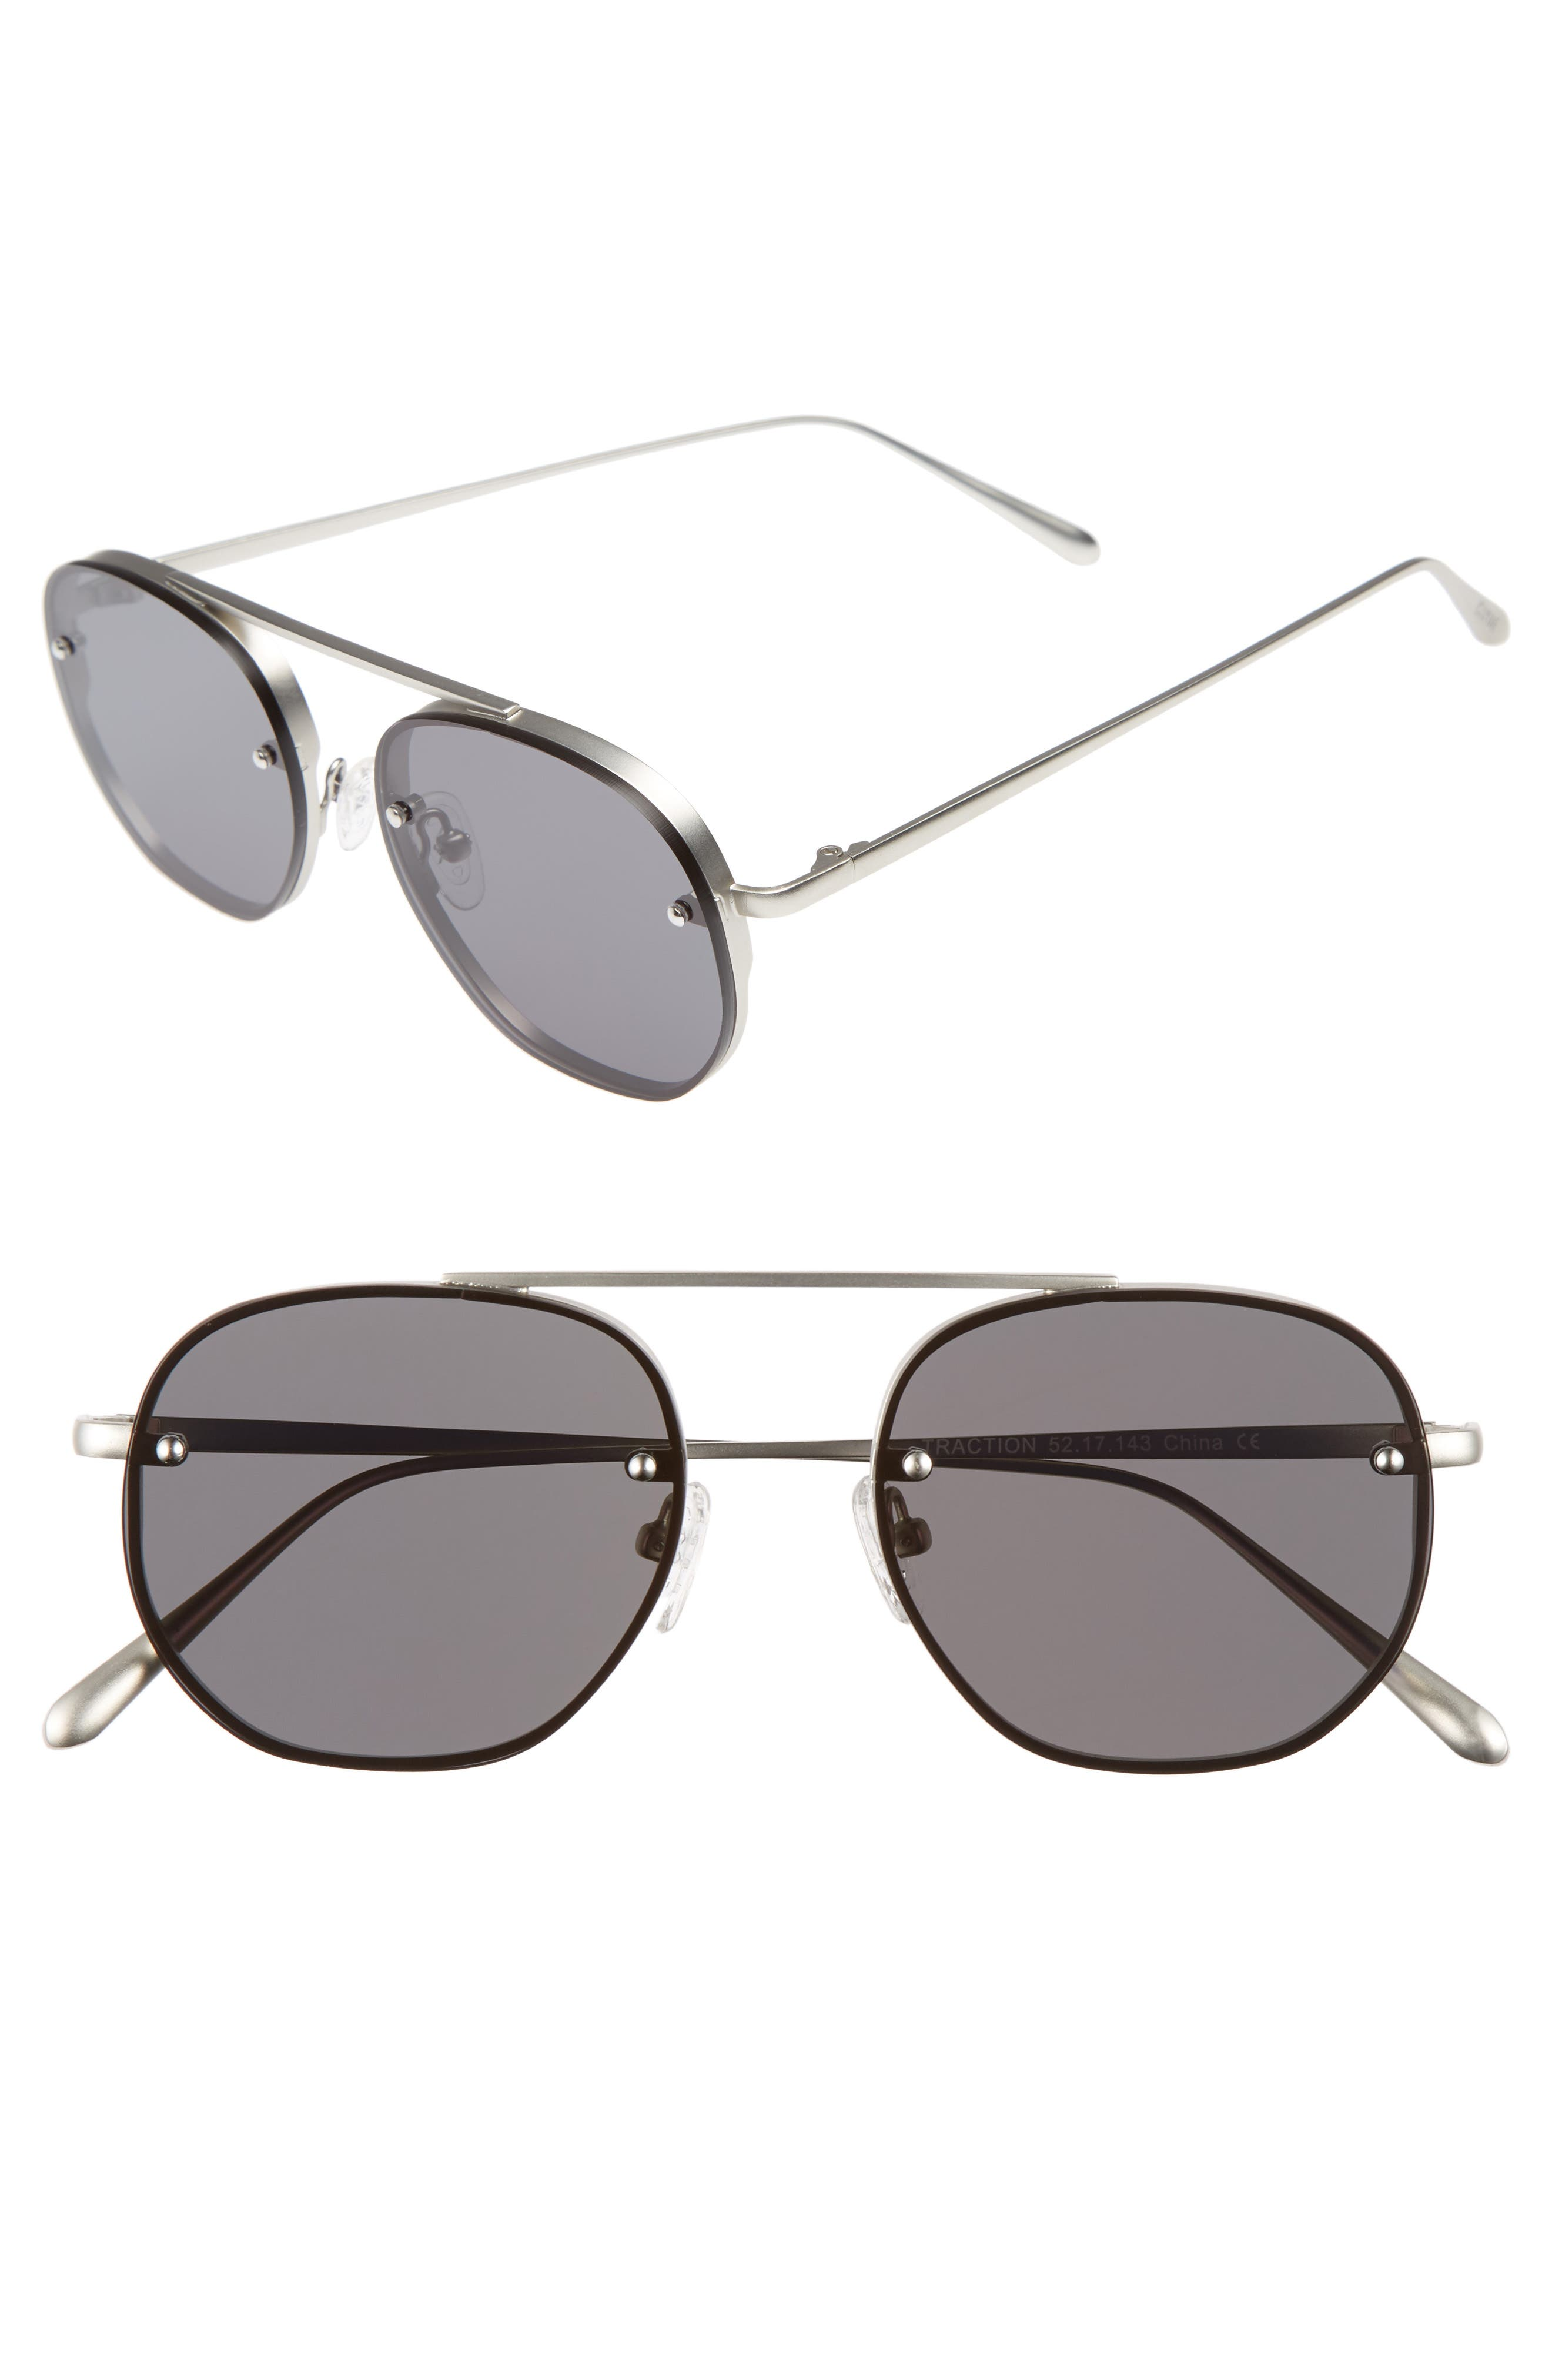 Bonnie Clyde Traction 52mm Aviator Sunglasses